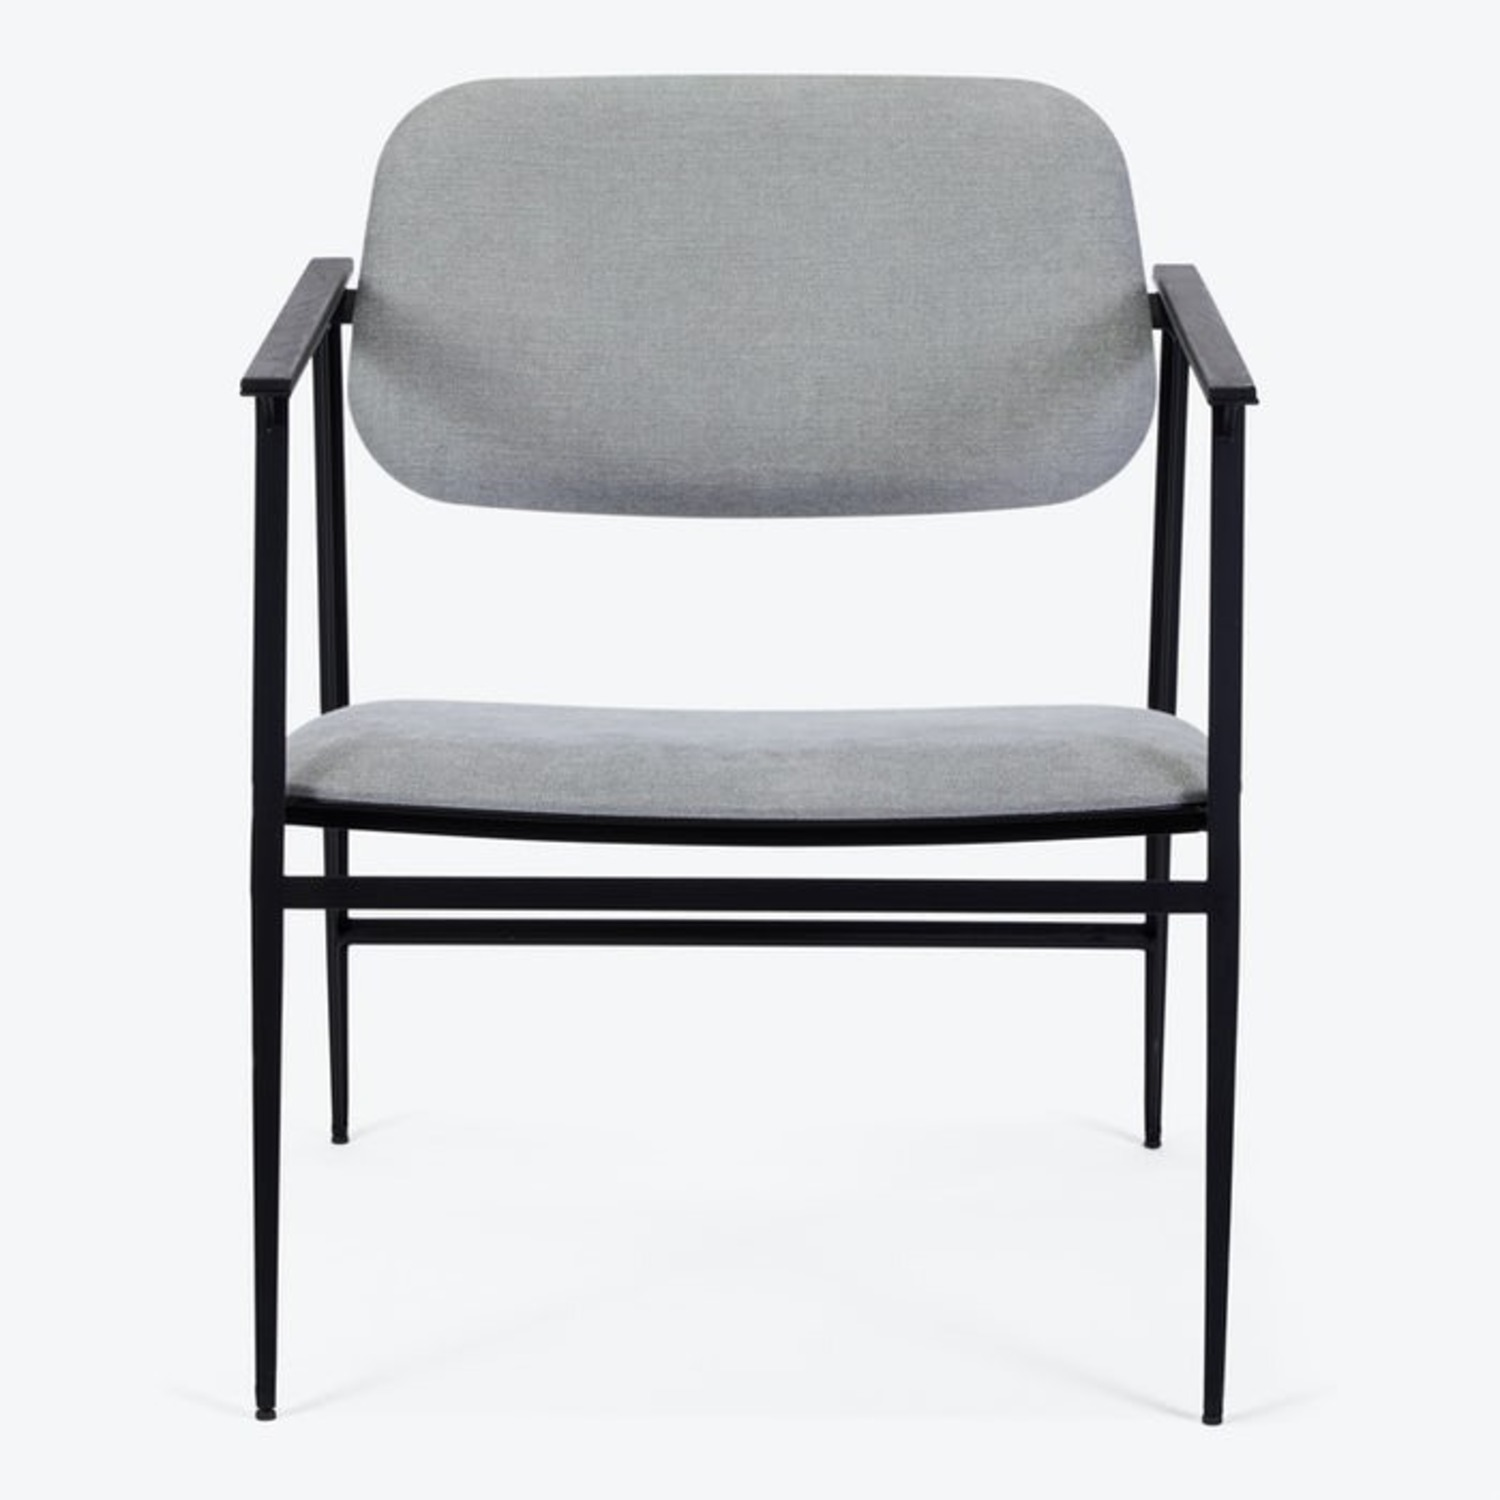 ABC Carpet and Home Modern Accent Chair - image-6